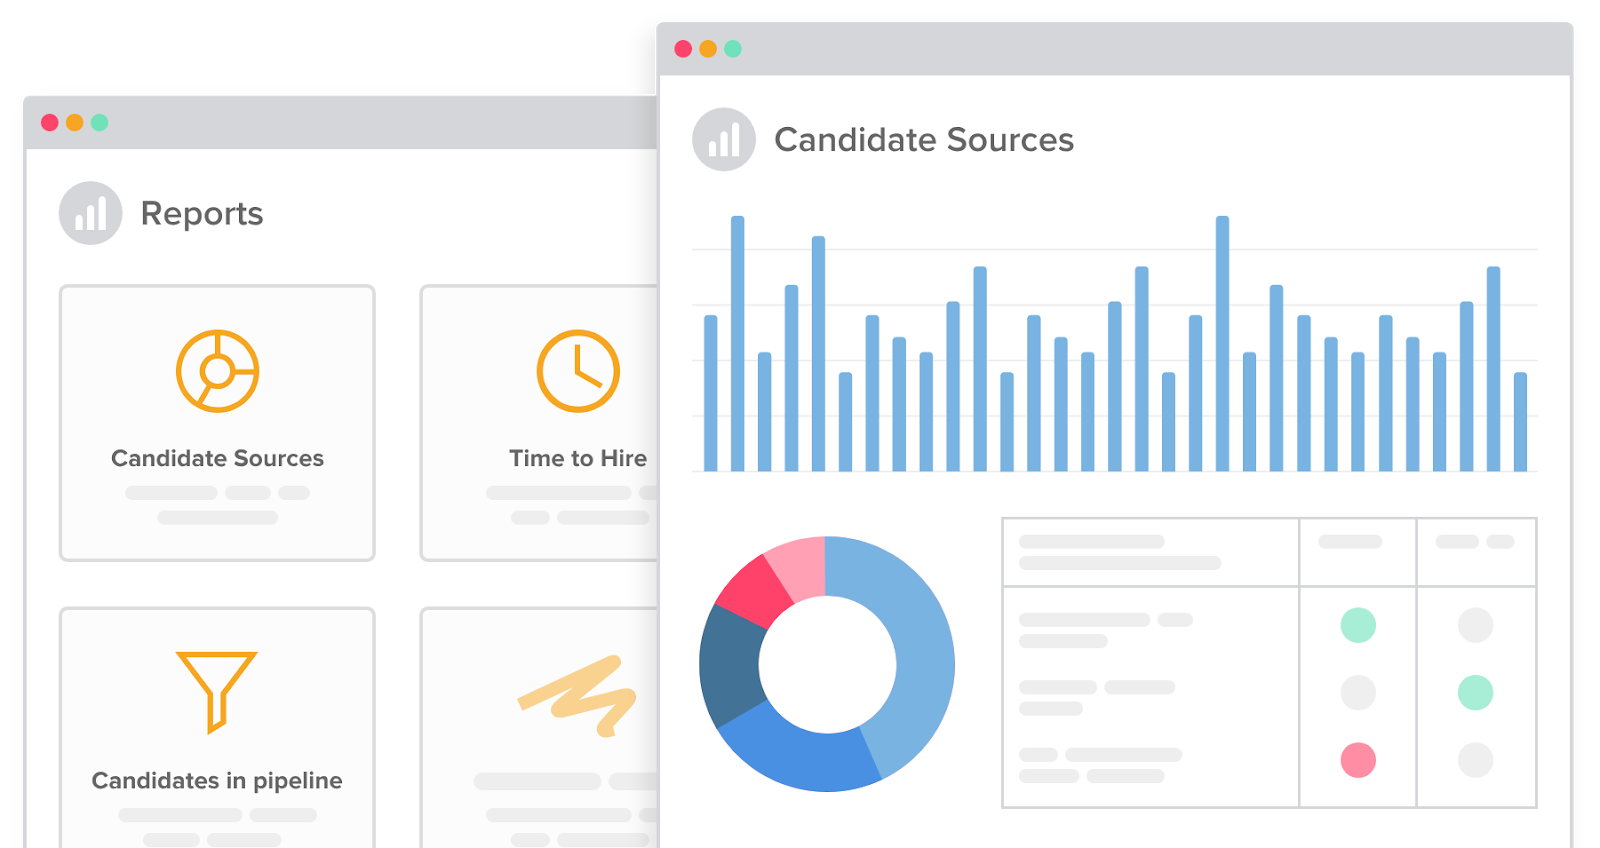 examples of recruiterbox's data reporting tools and analytics